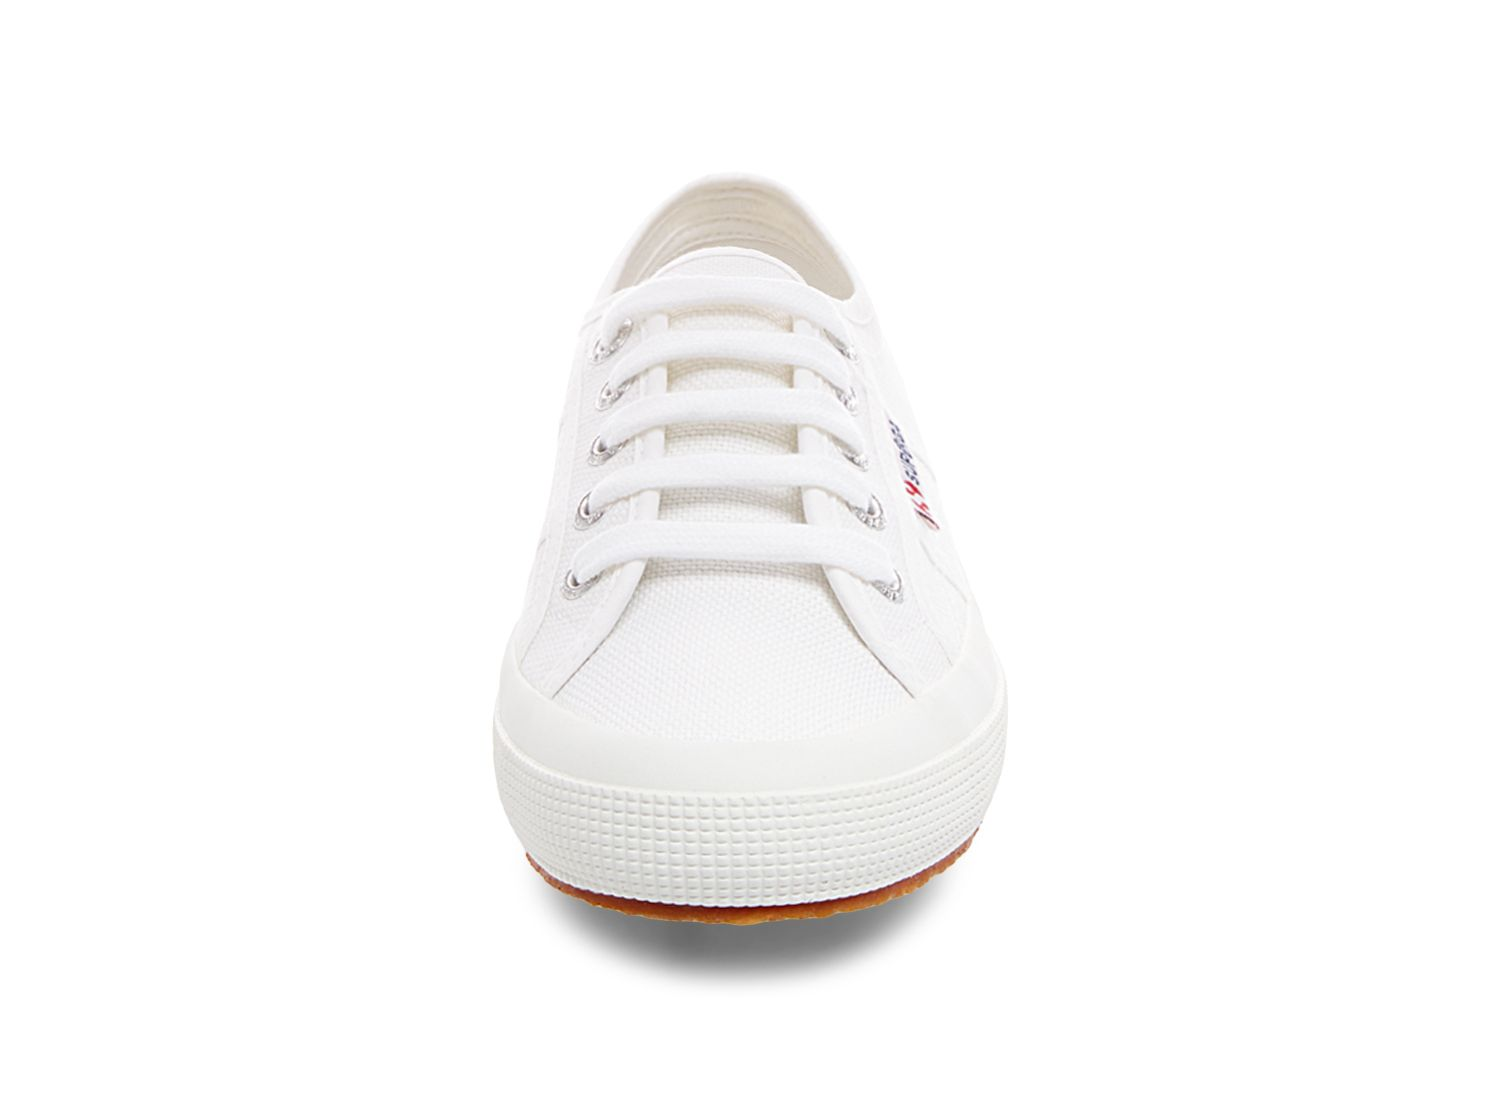 7e79db546273 ... 2750 COTU CLASSIC WHITE - Women s and Men s ...